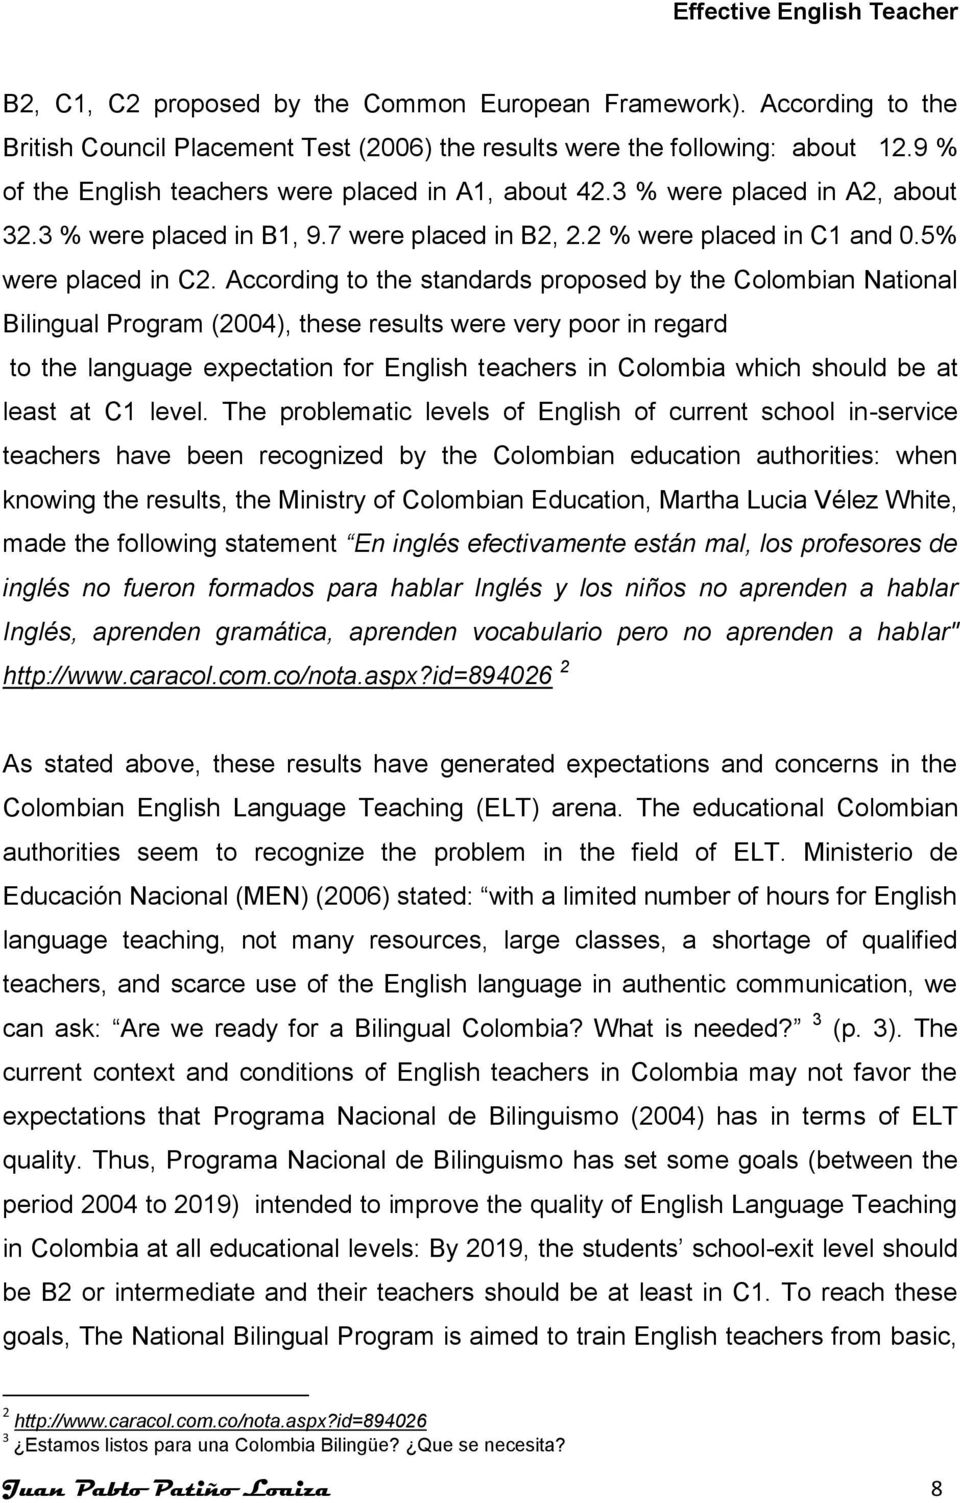 According to the standards proposed by the Colombian National Bilingual Program (2004), these results were very poor in regard to the language expectation for English teachers in Colombia which